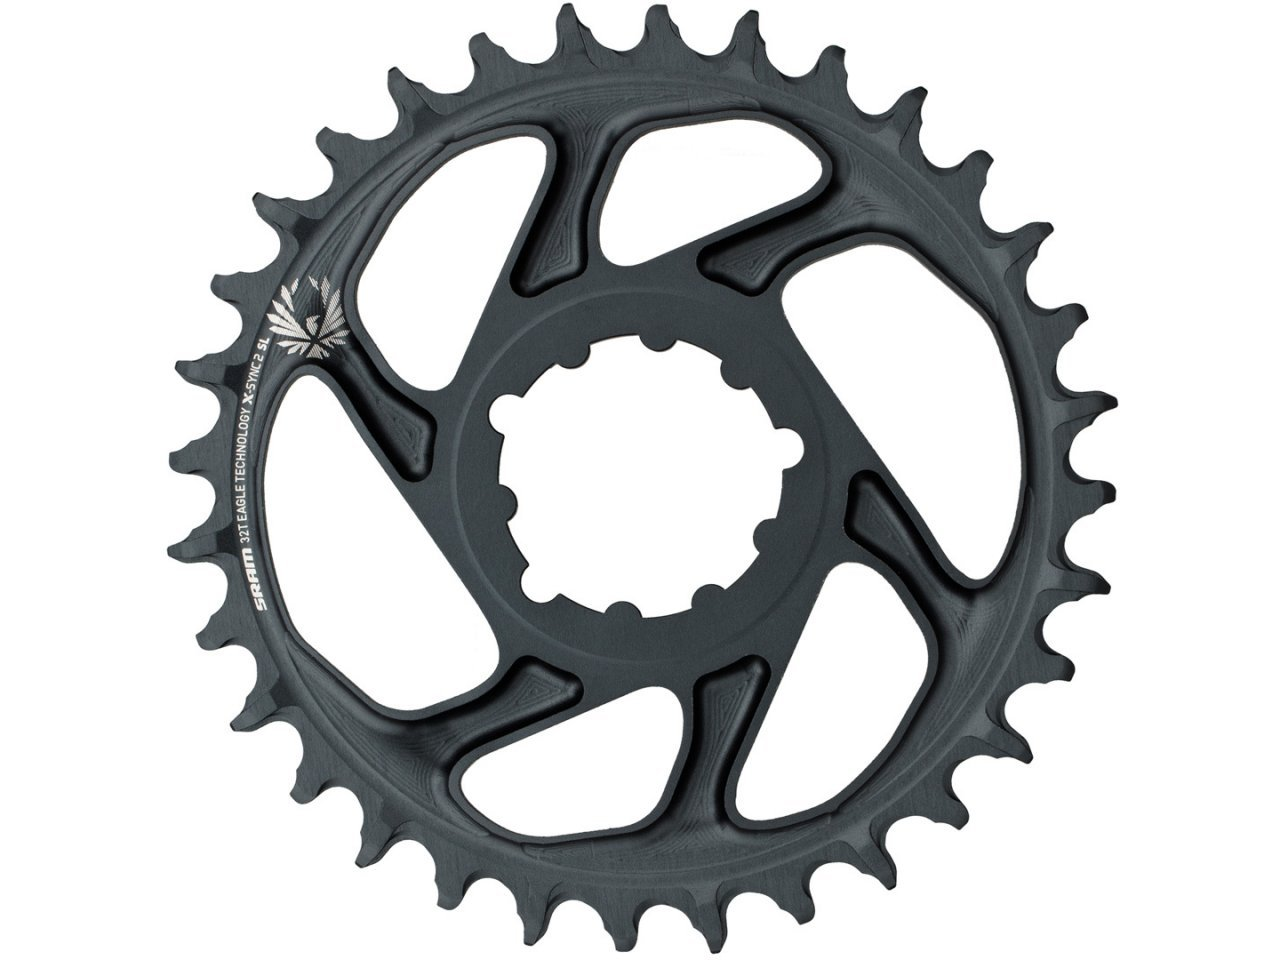 Sram X-SYNC 2 Eagle XX1  12 spd Direct Mount 36T Chainring 3mm Offset Boost Gold